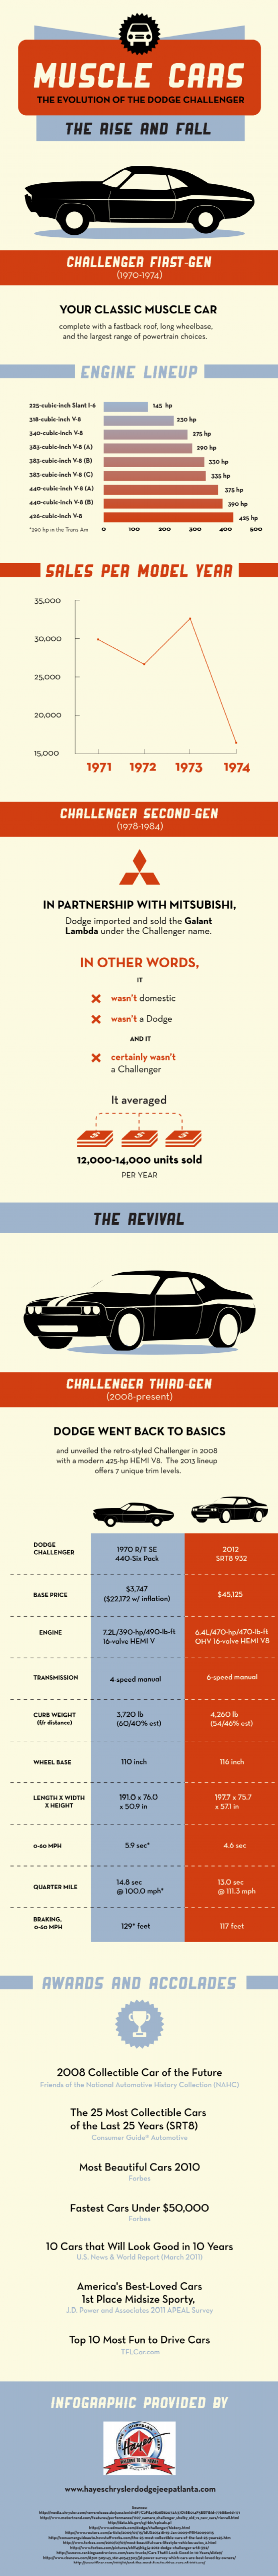 Muscle Cars: The Evolution of the Dodge Challenger Infographic